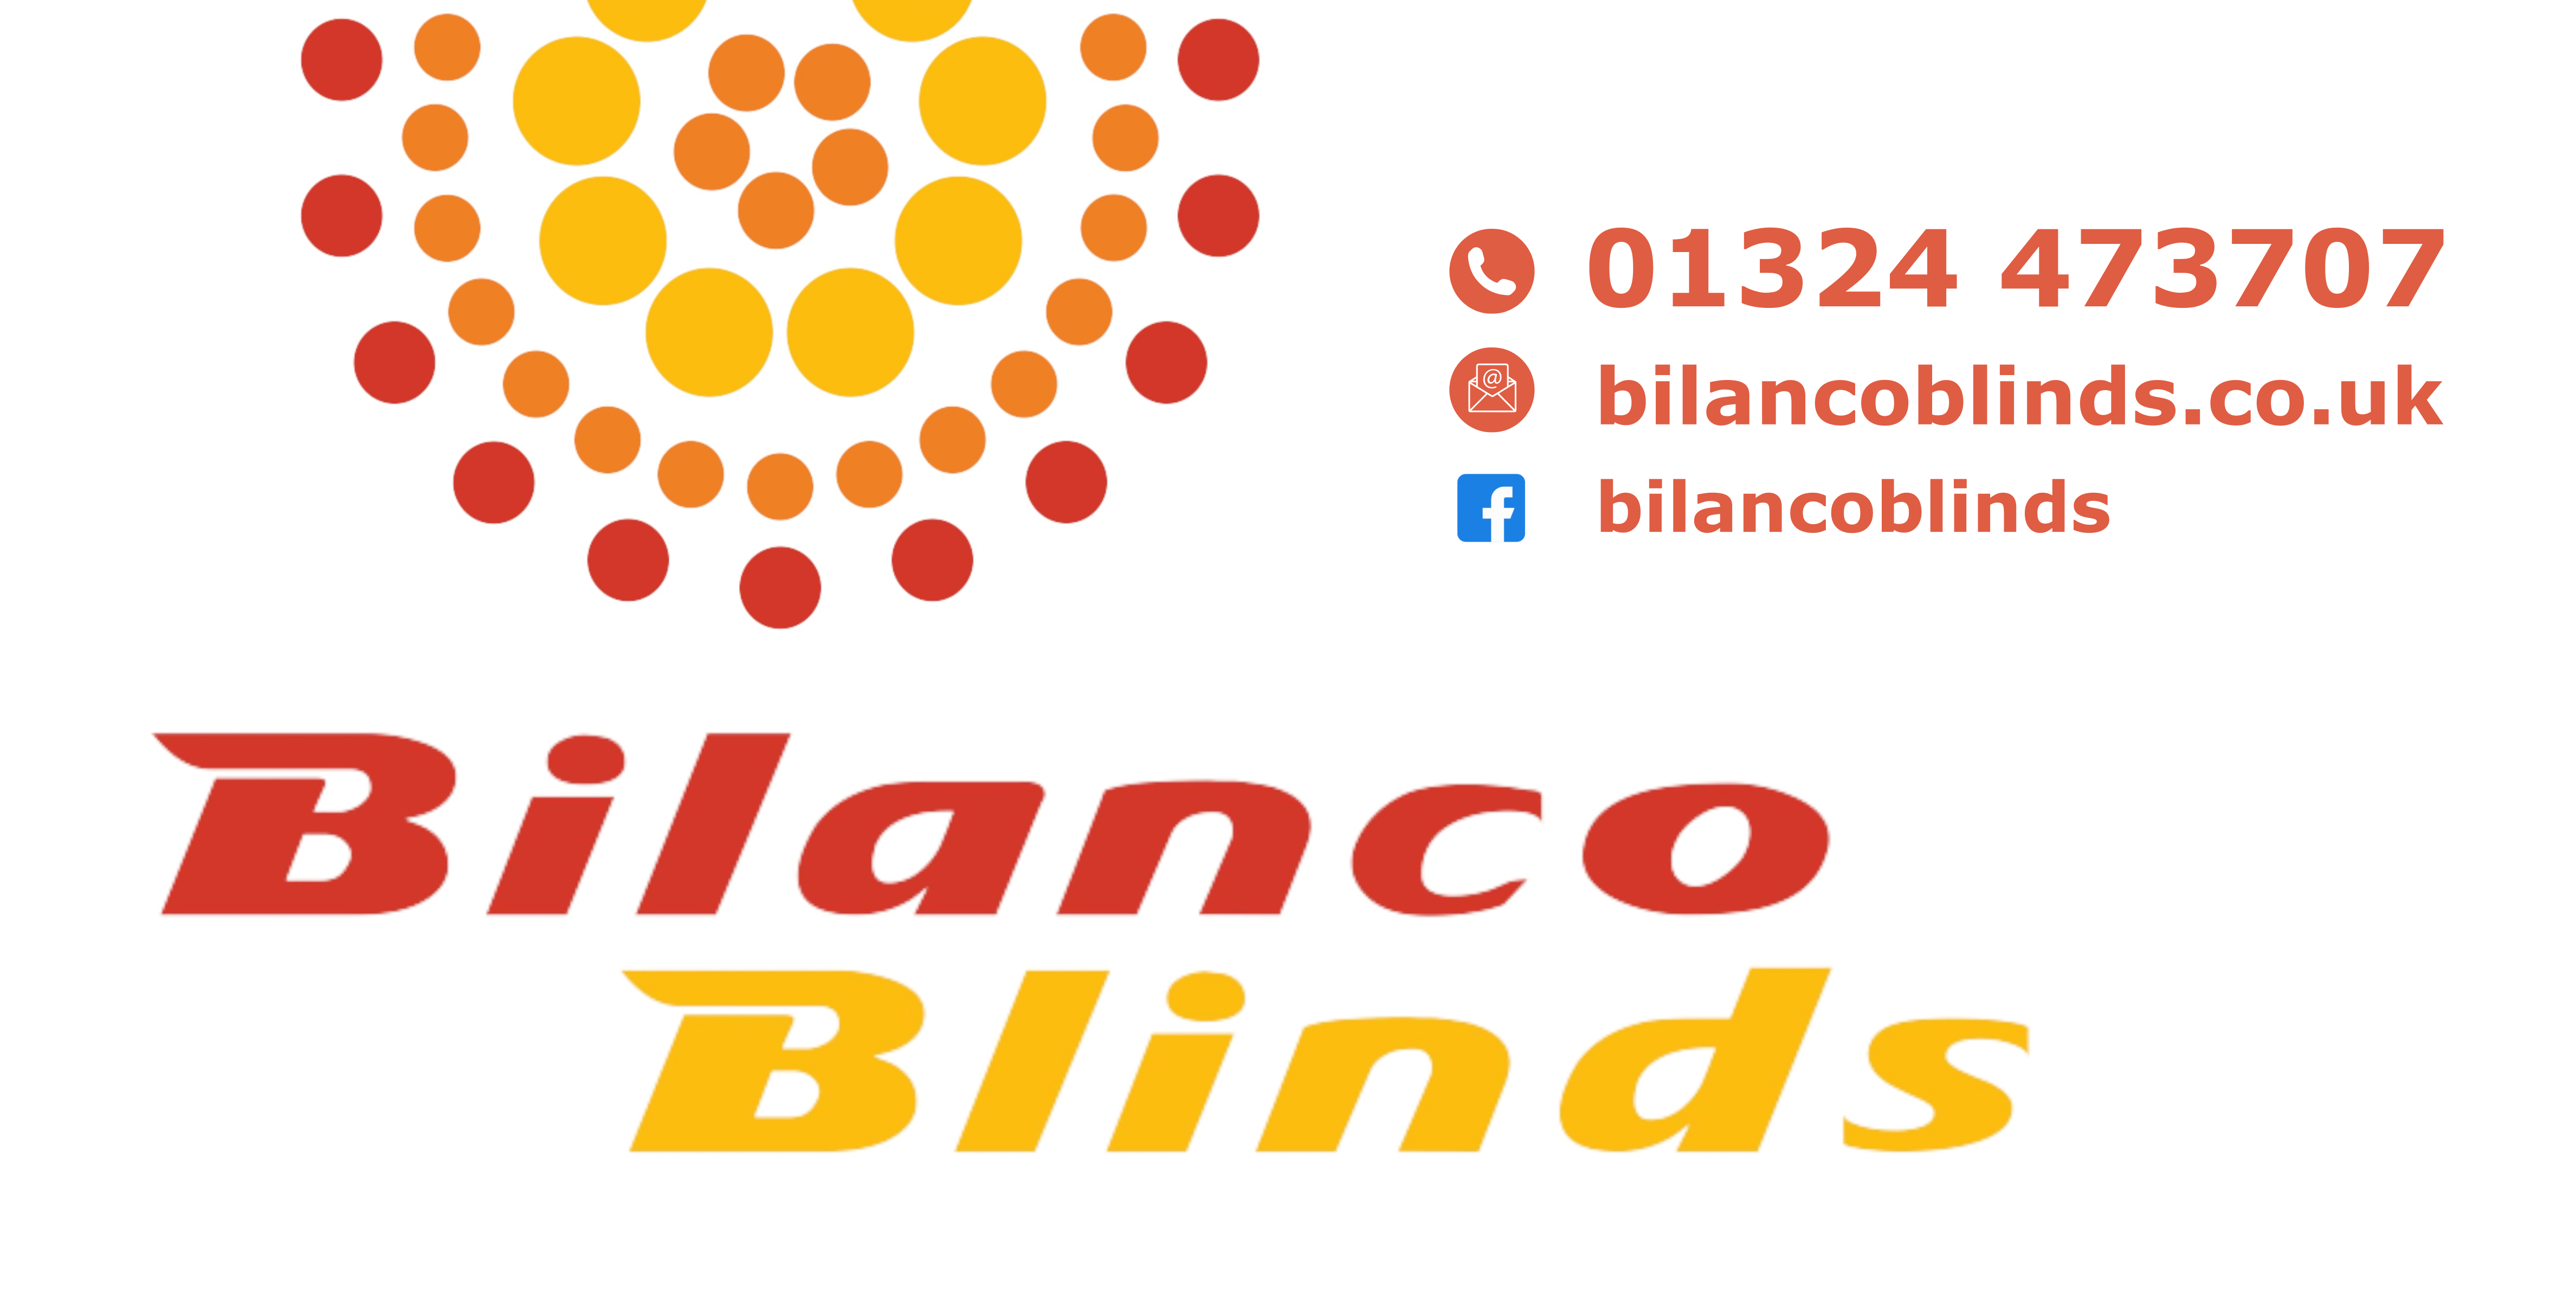 Bilanco Blinds Board